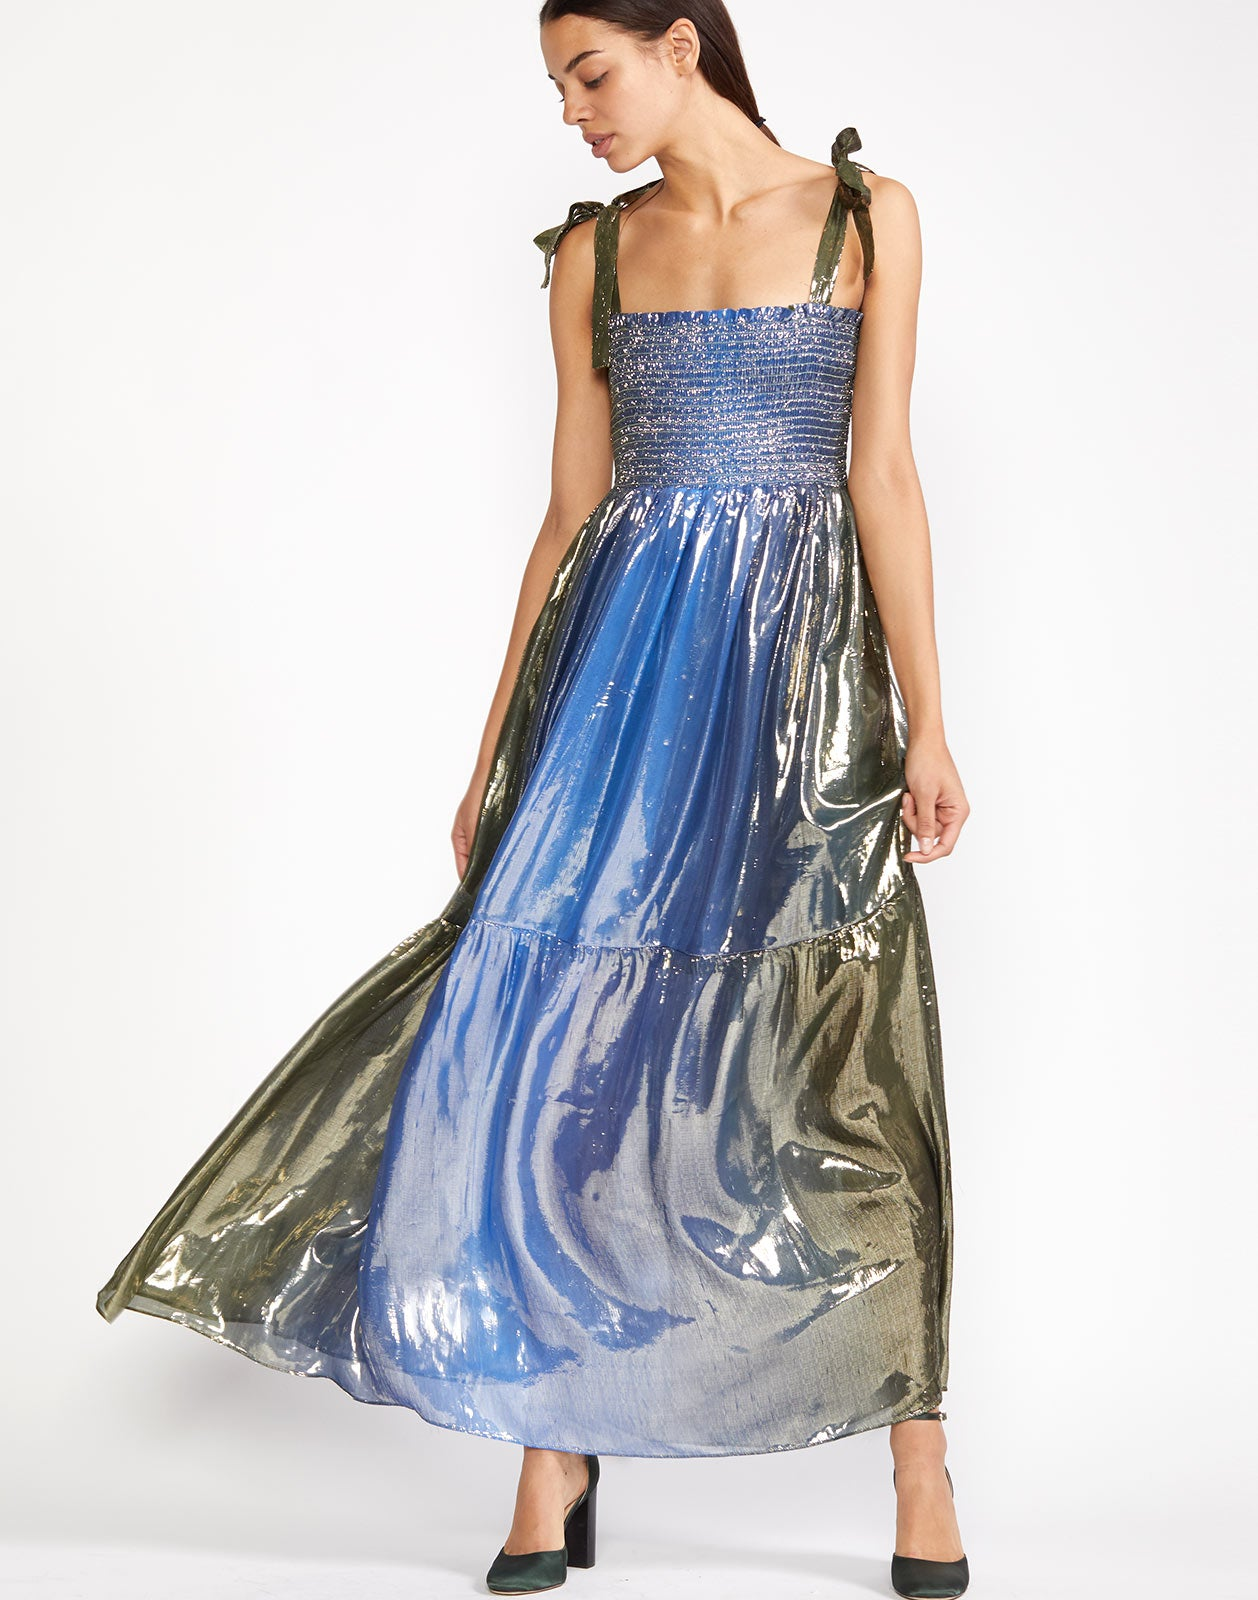 Alternate view of the blue green metallic ombre maxi dress.